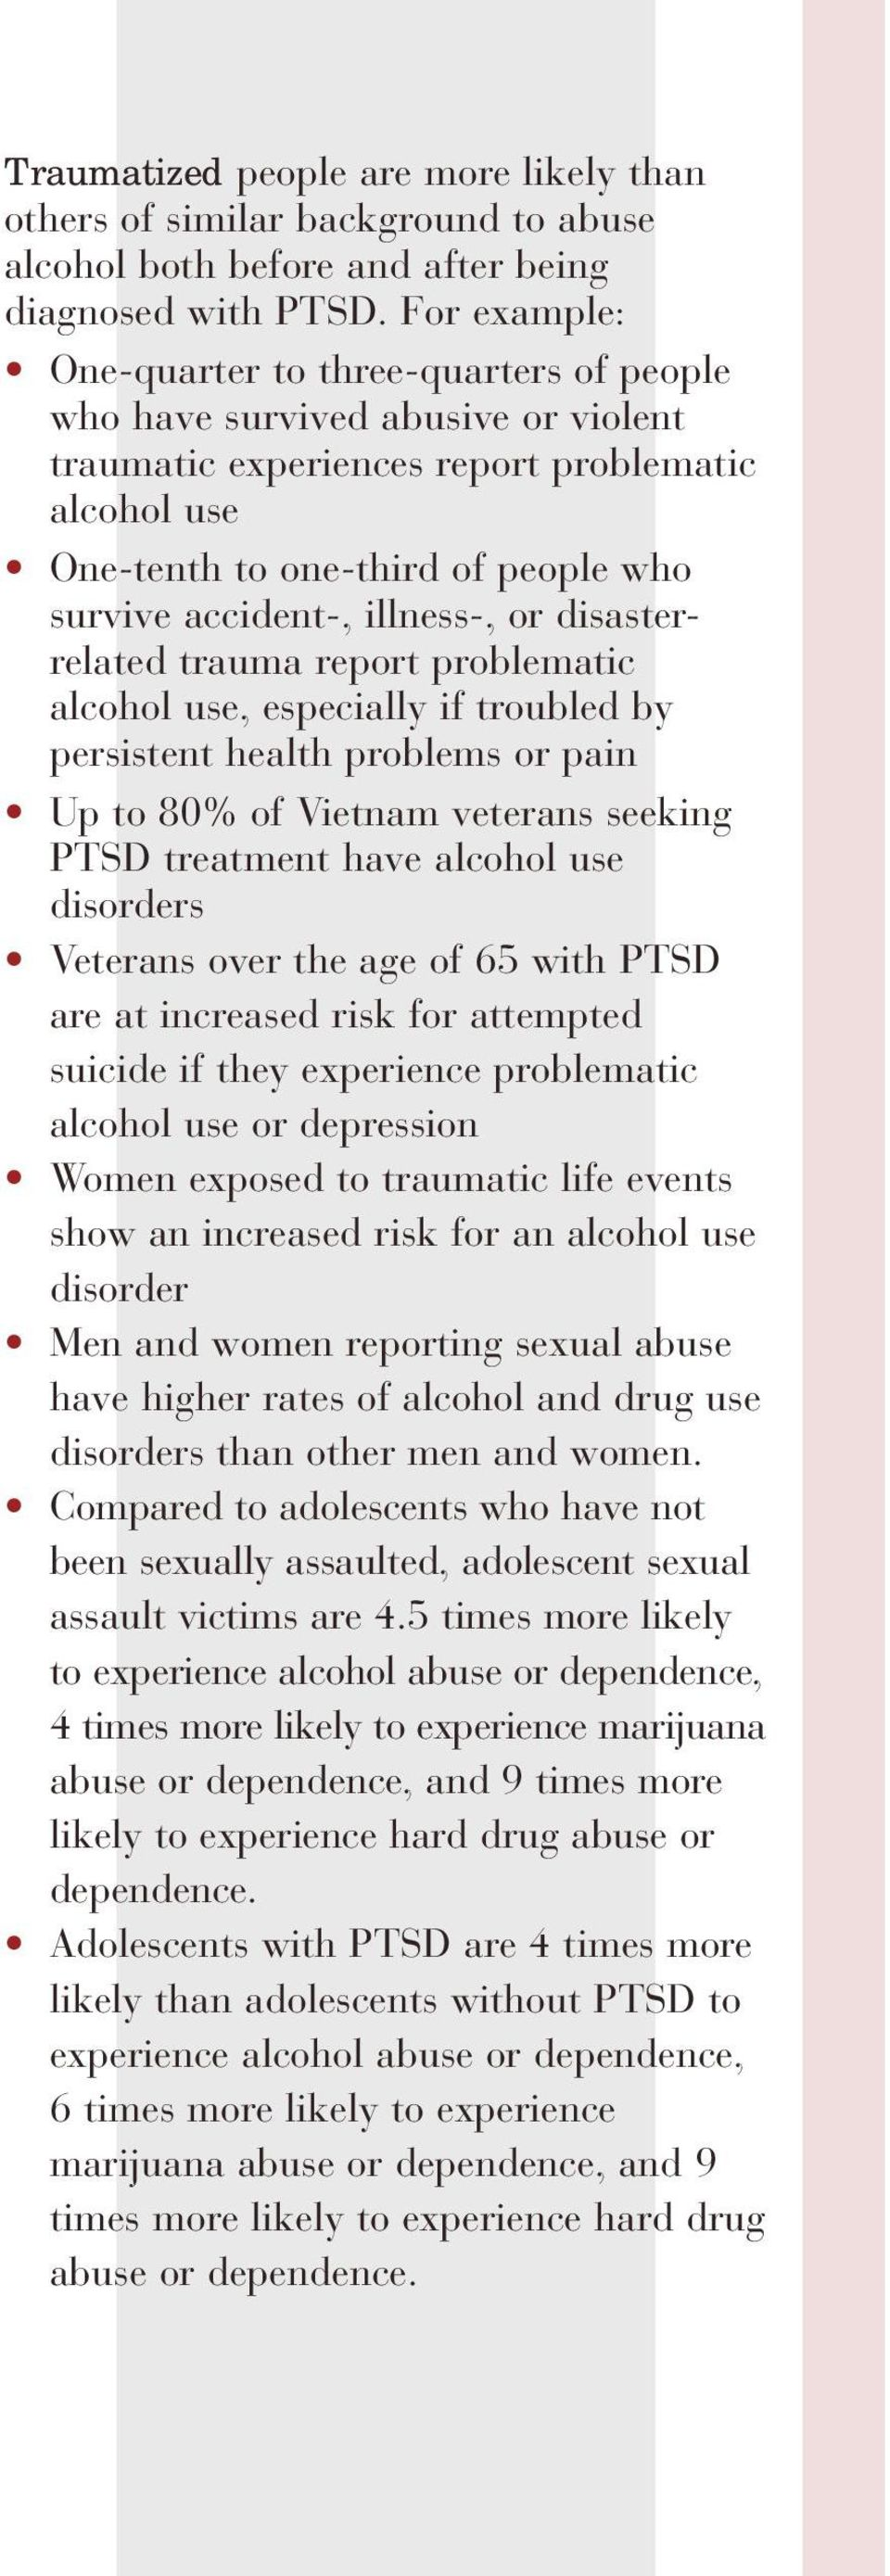 illness-, or disasterrelated trauma report problematic alcohol use, especially if troubled by persistent health problems or pain Up to 80% of Vietnam veterans seeking PTSD treatment have alcohol use